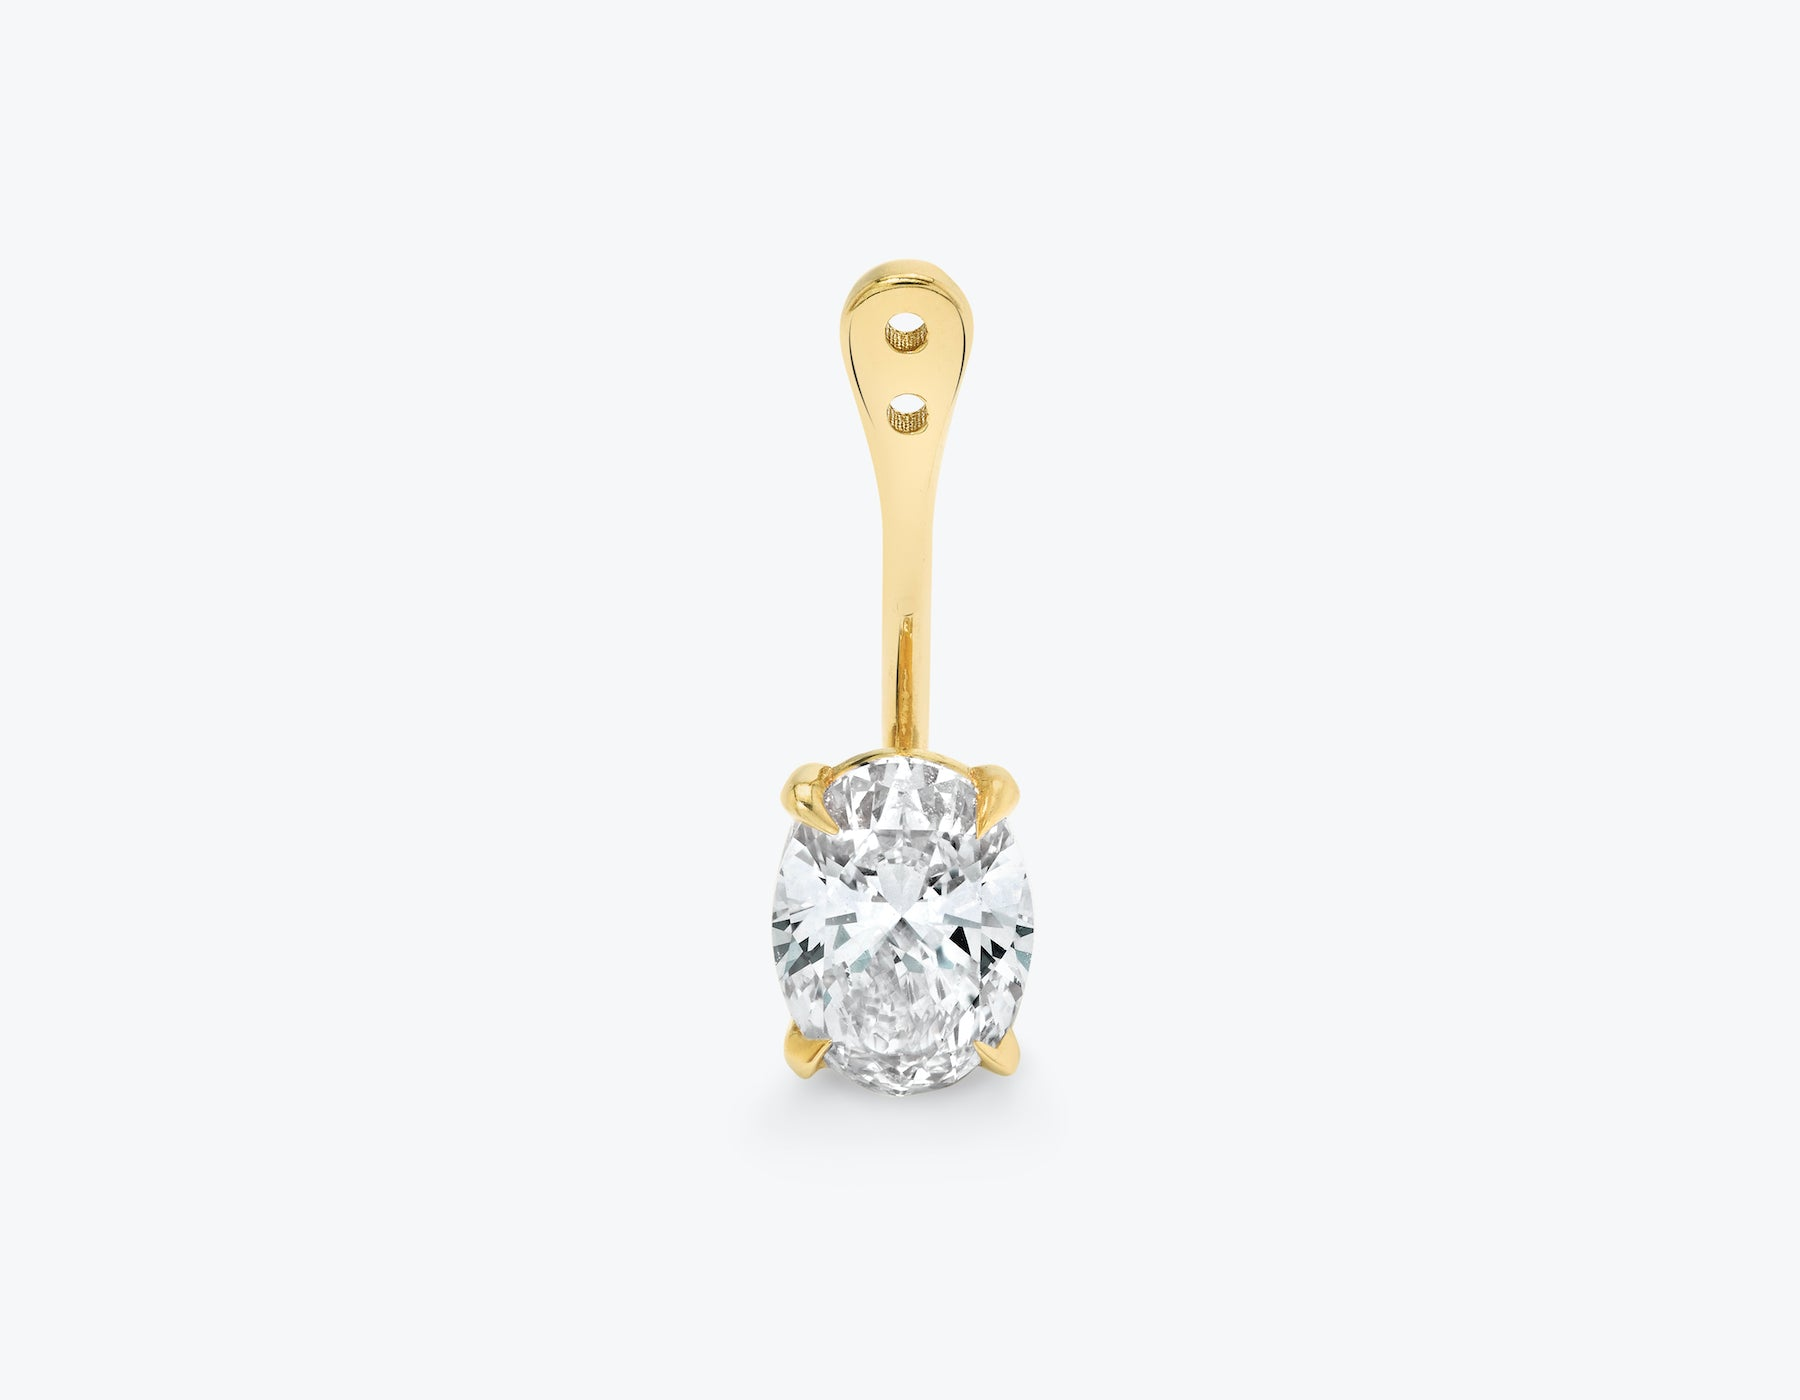 Vrai solitaire oval diamond drop ear jackets made in 14k solid gold with sustainably created diamonds, 14K Yellow Gold